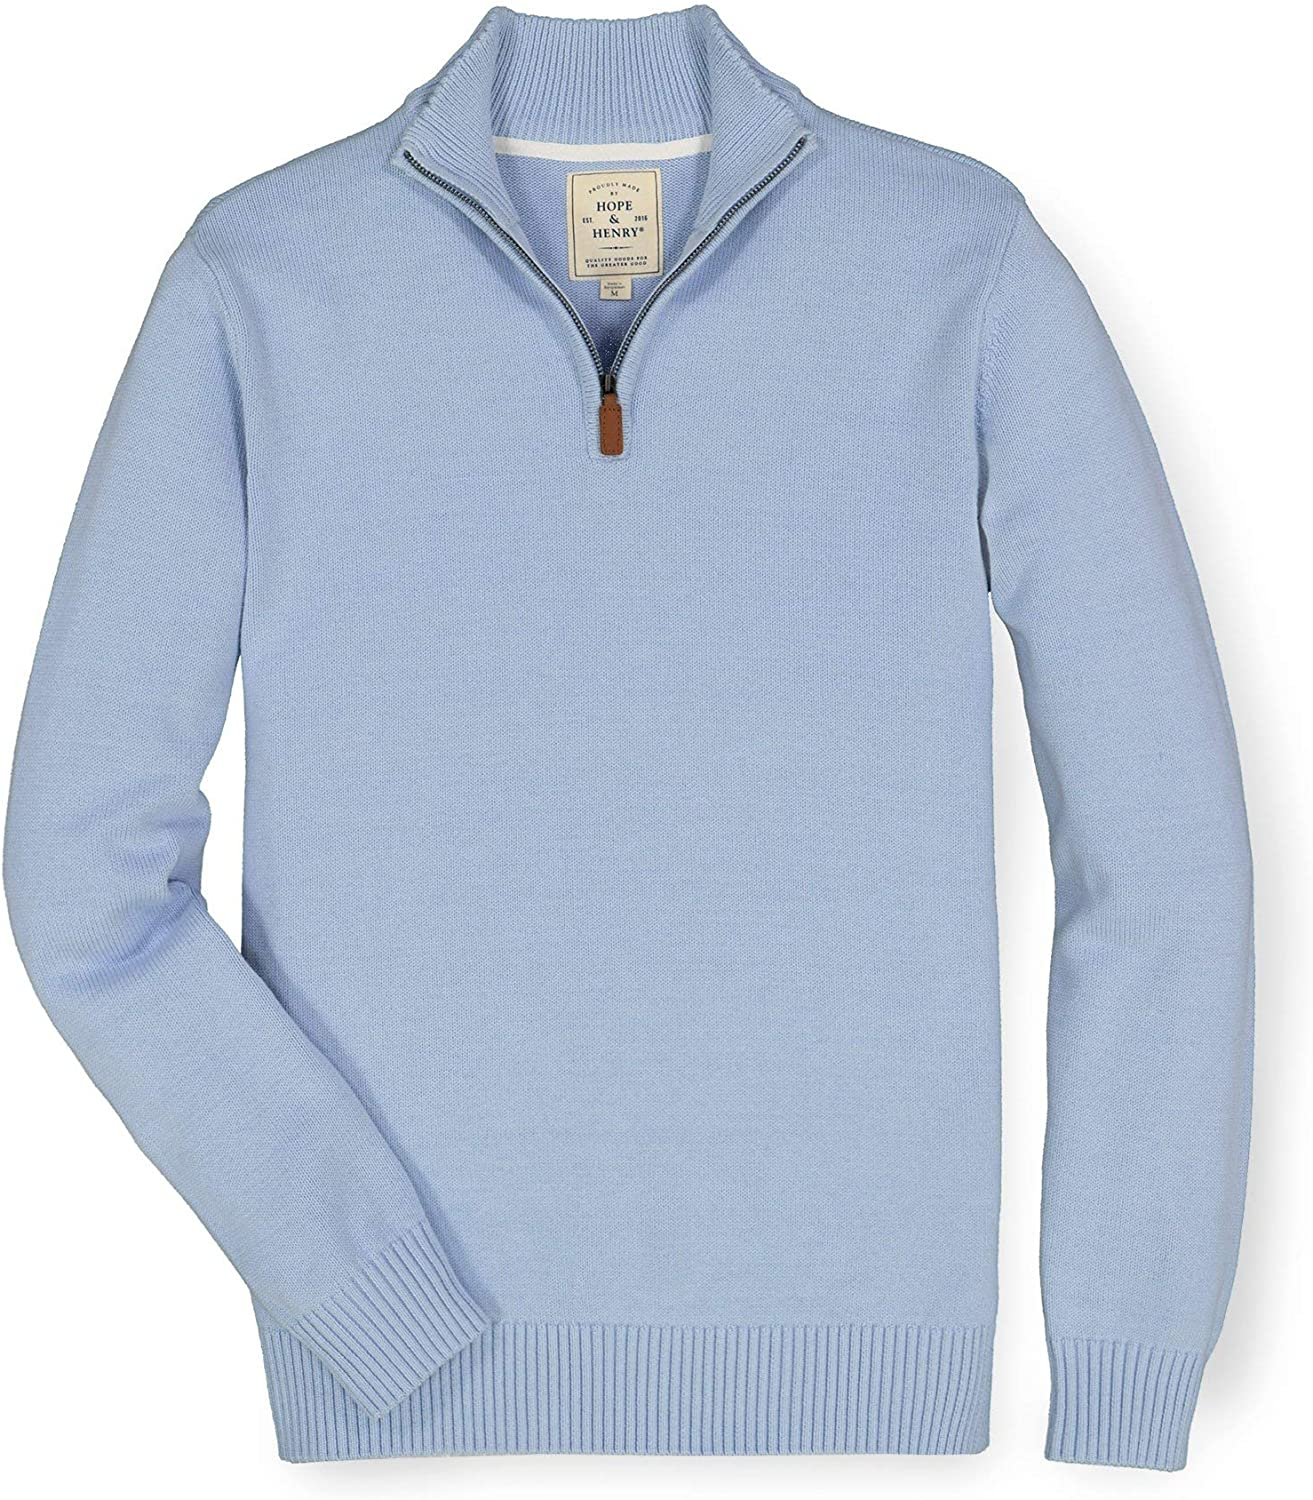 Hope Henry Men's Discount mail order Half Zip Pullover Sweater Cheap bargain